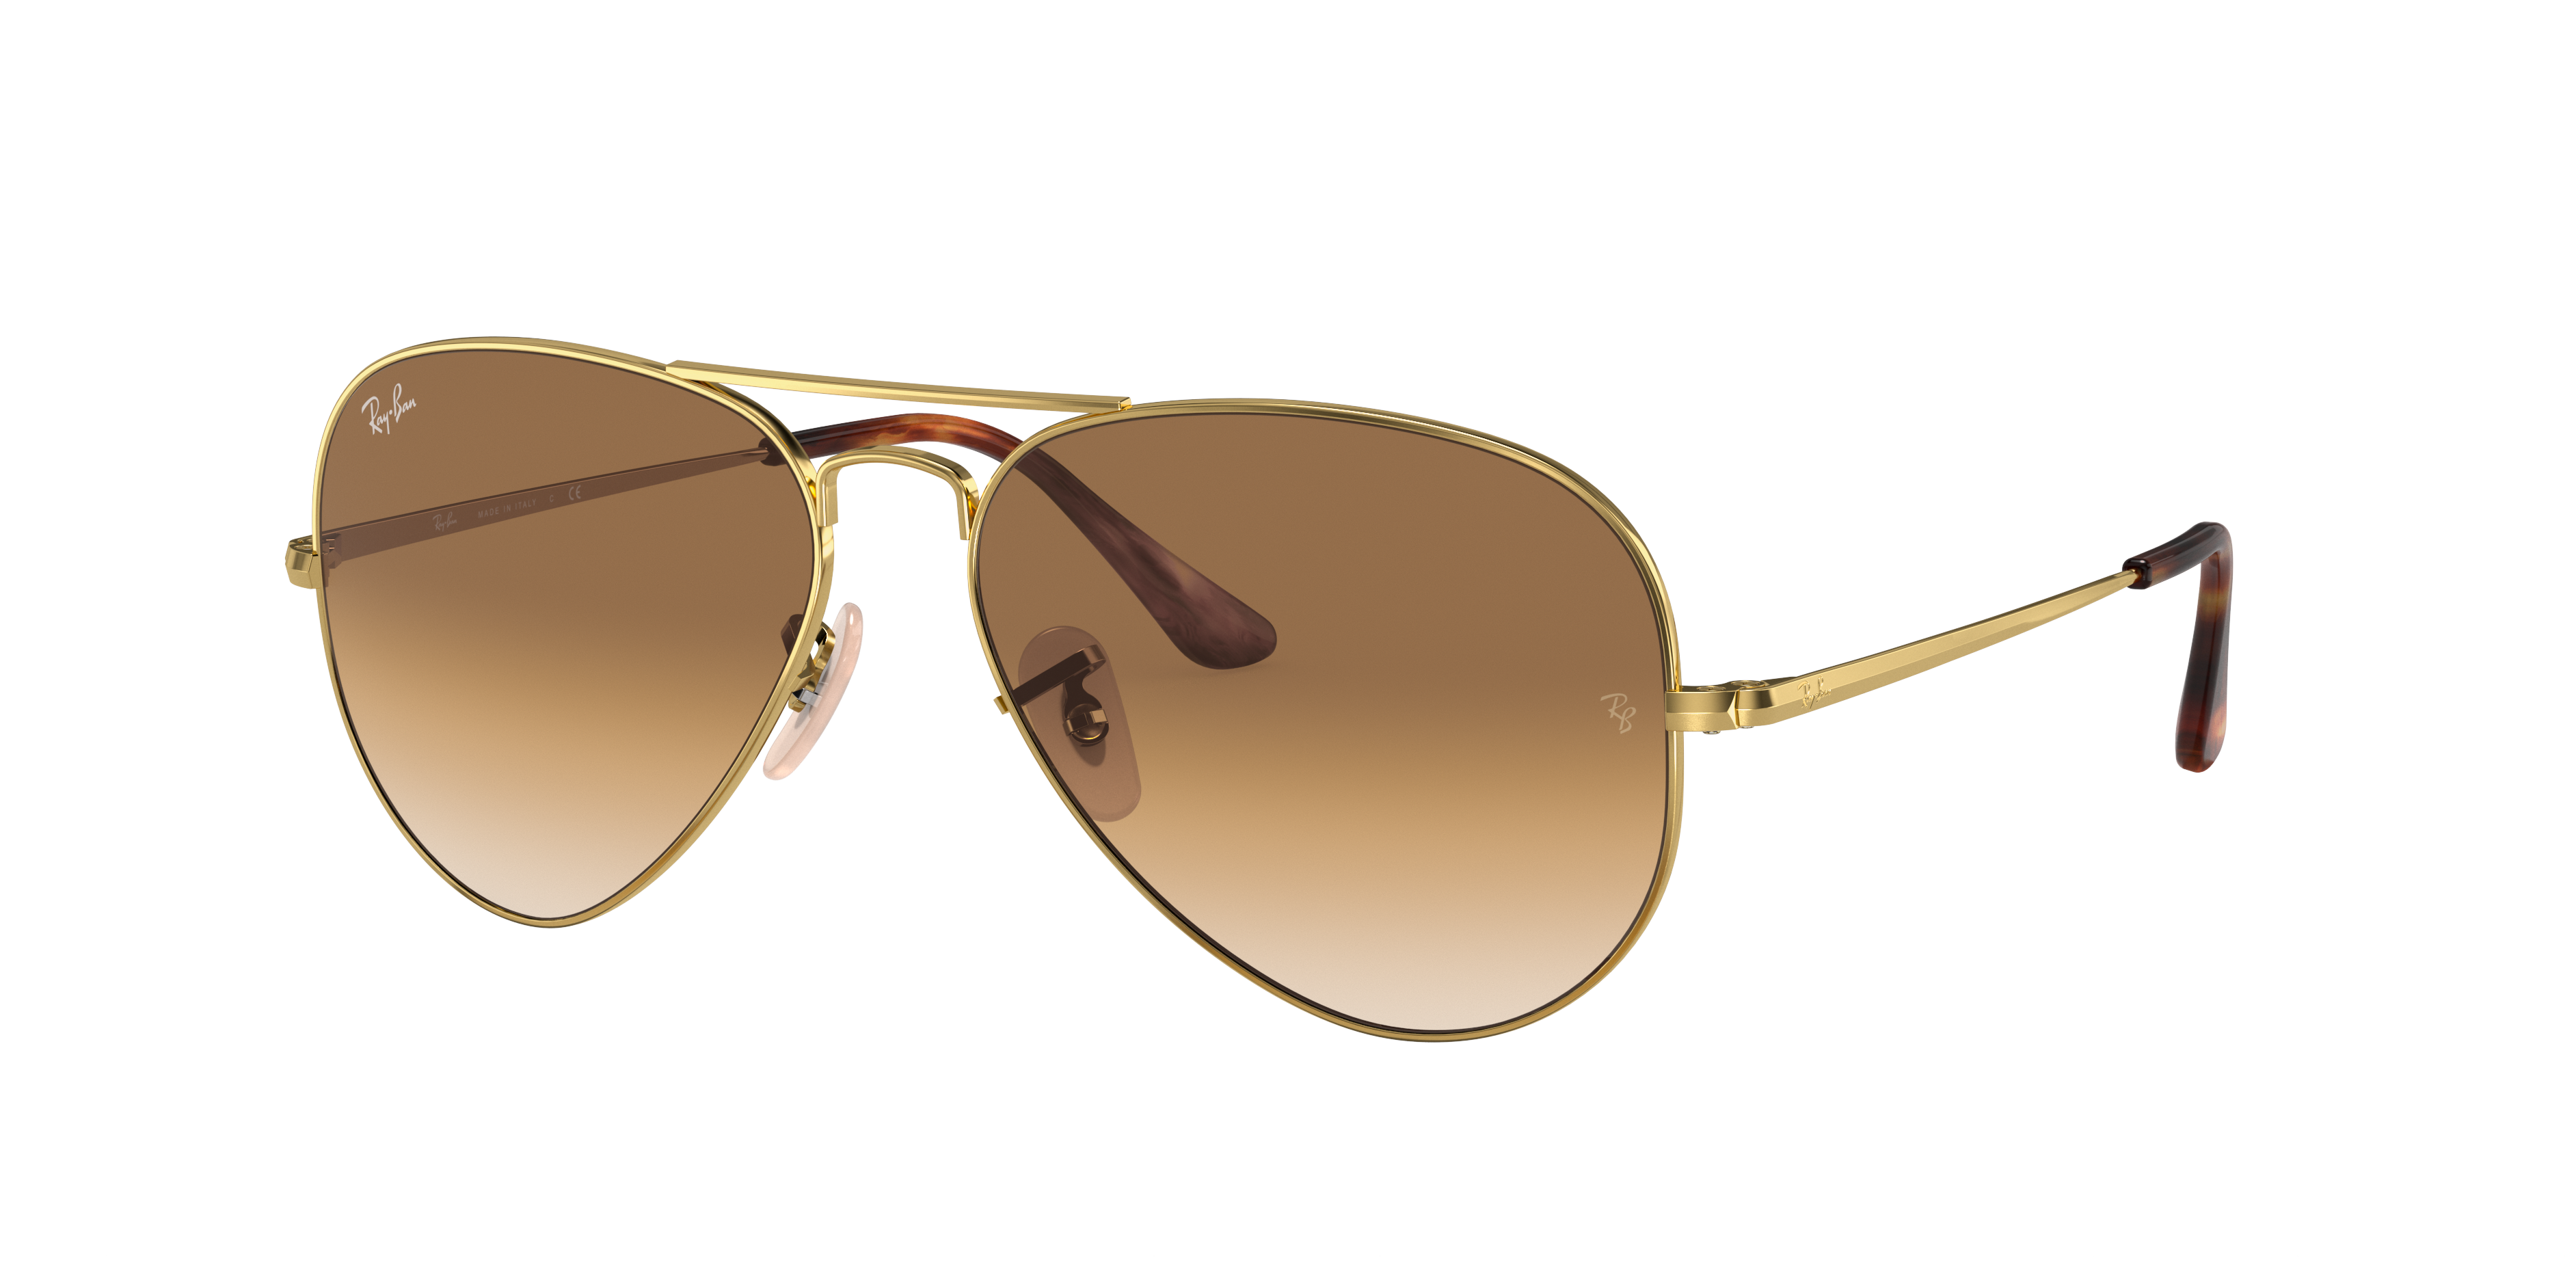 Ray-Ban Rb3689 Gold, Brown Lenses - RB3689